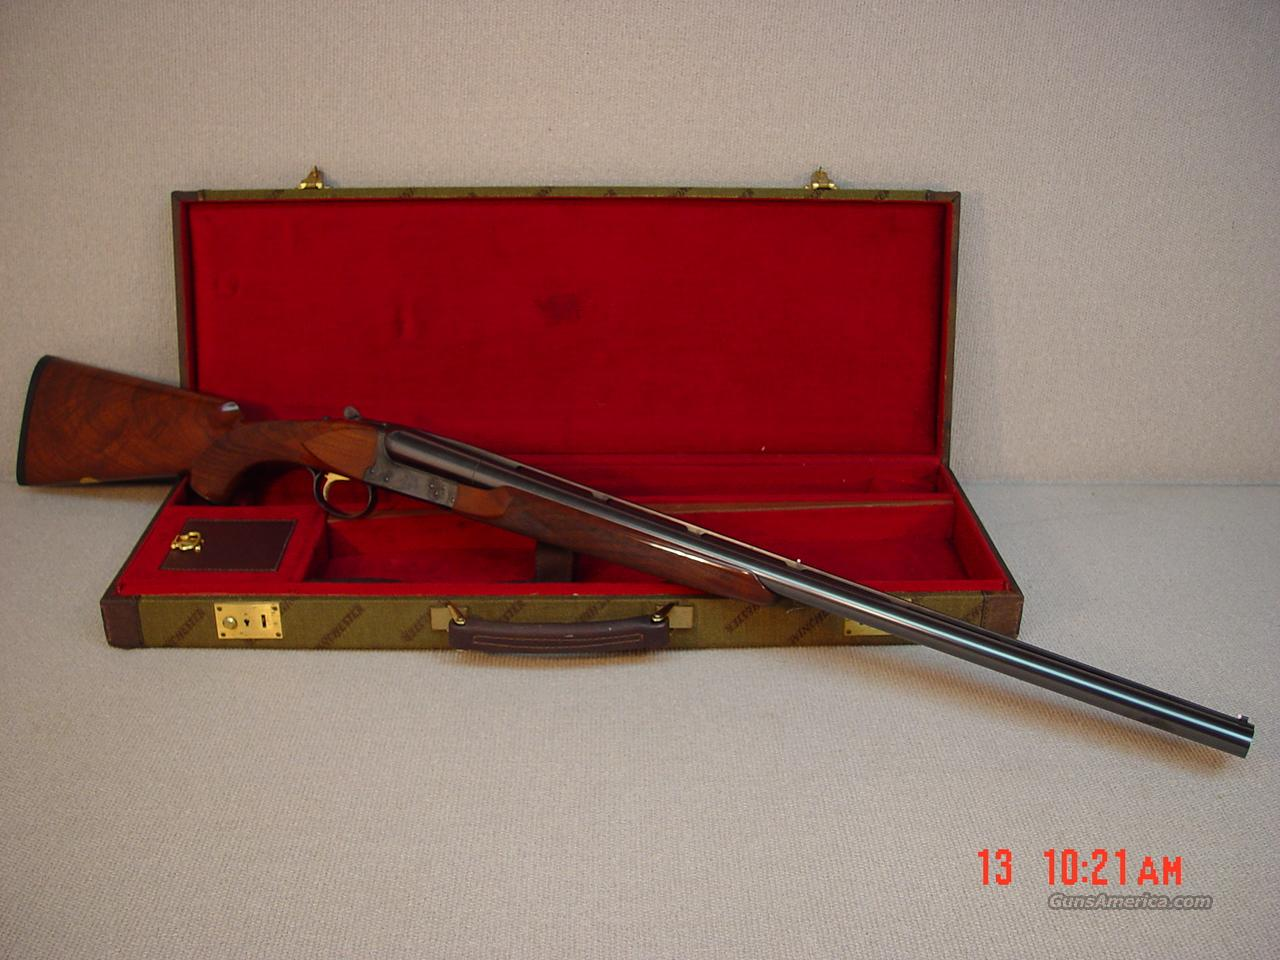 WINCHESTER Model 23 CLASSIC 12GA with CASE  Guns > Shotguns > Winchester Shotguns - Modern > SxS